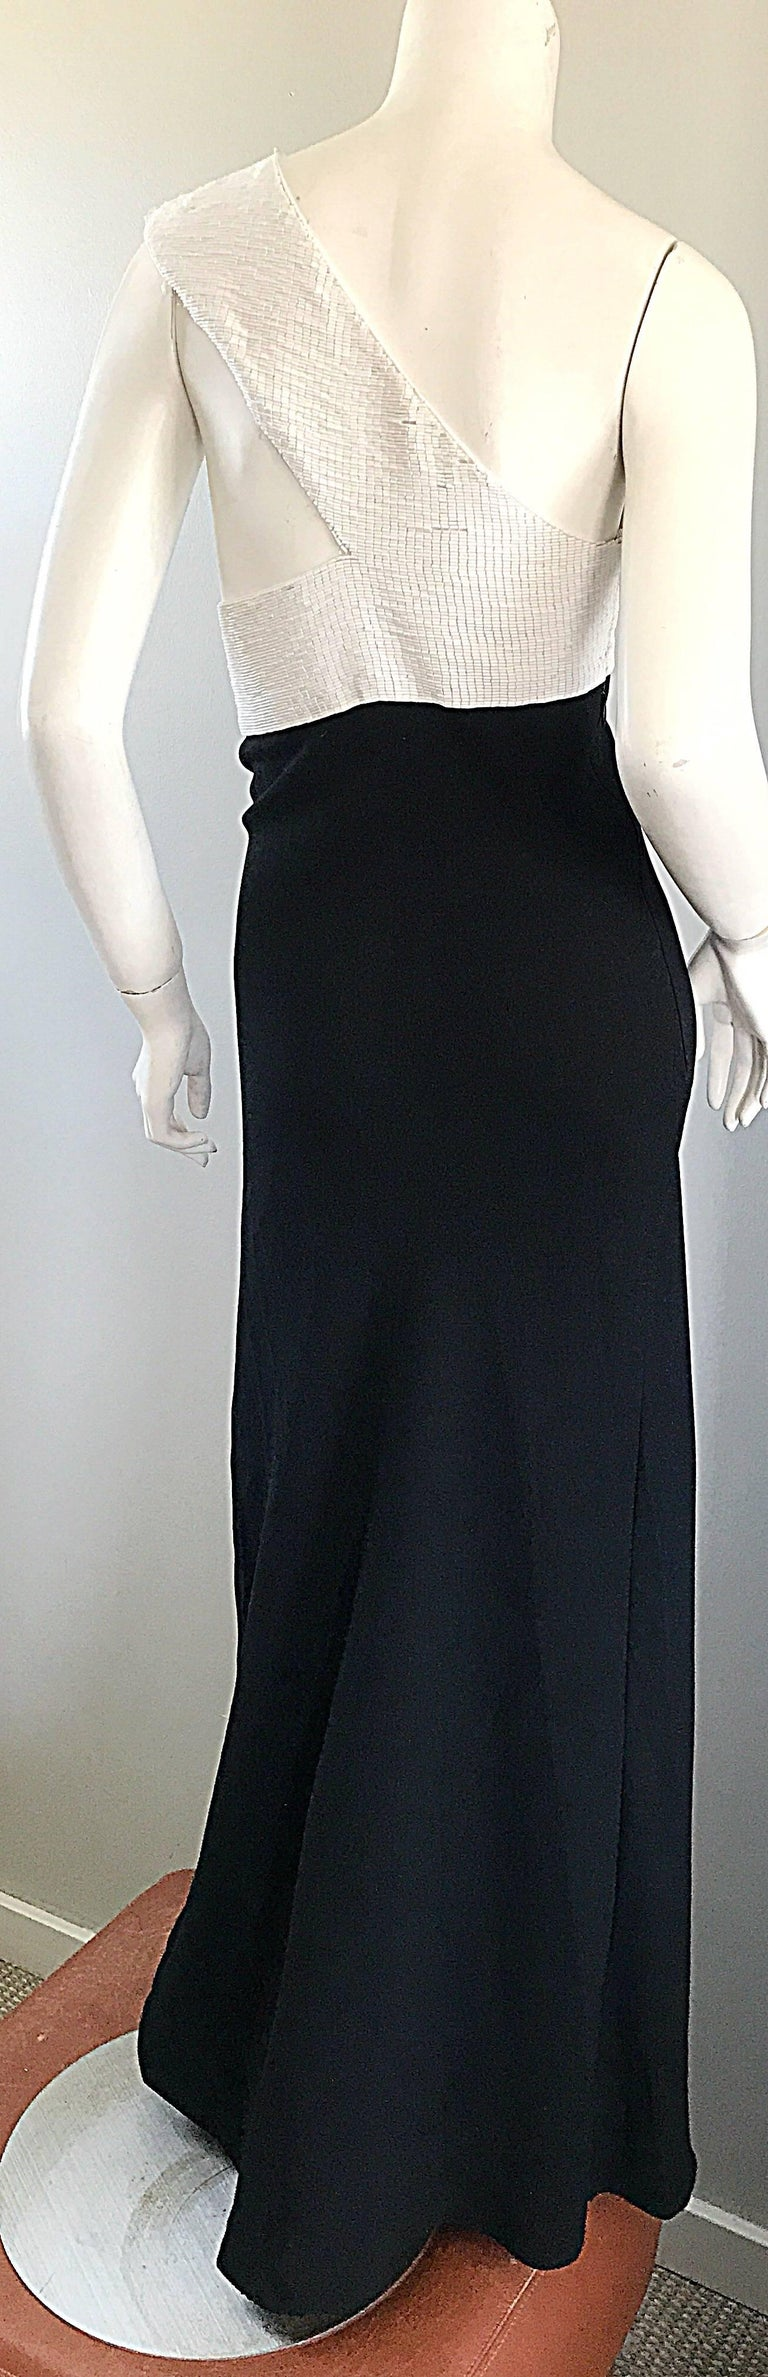 Women's Vintage Jackie Rogers 1990s Black and White One Shoulder Beaded 90s Evening Gown